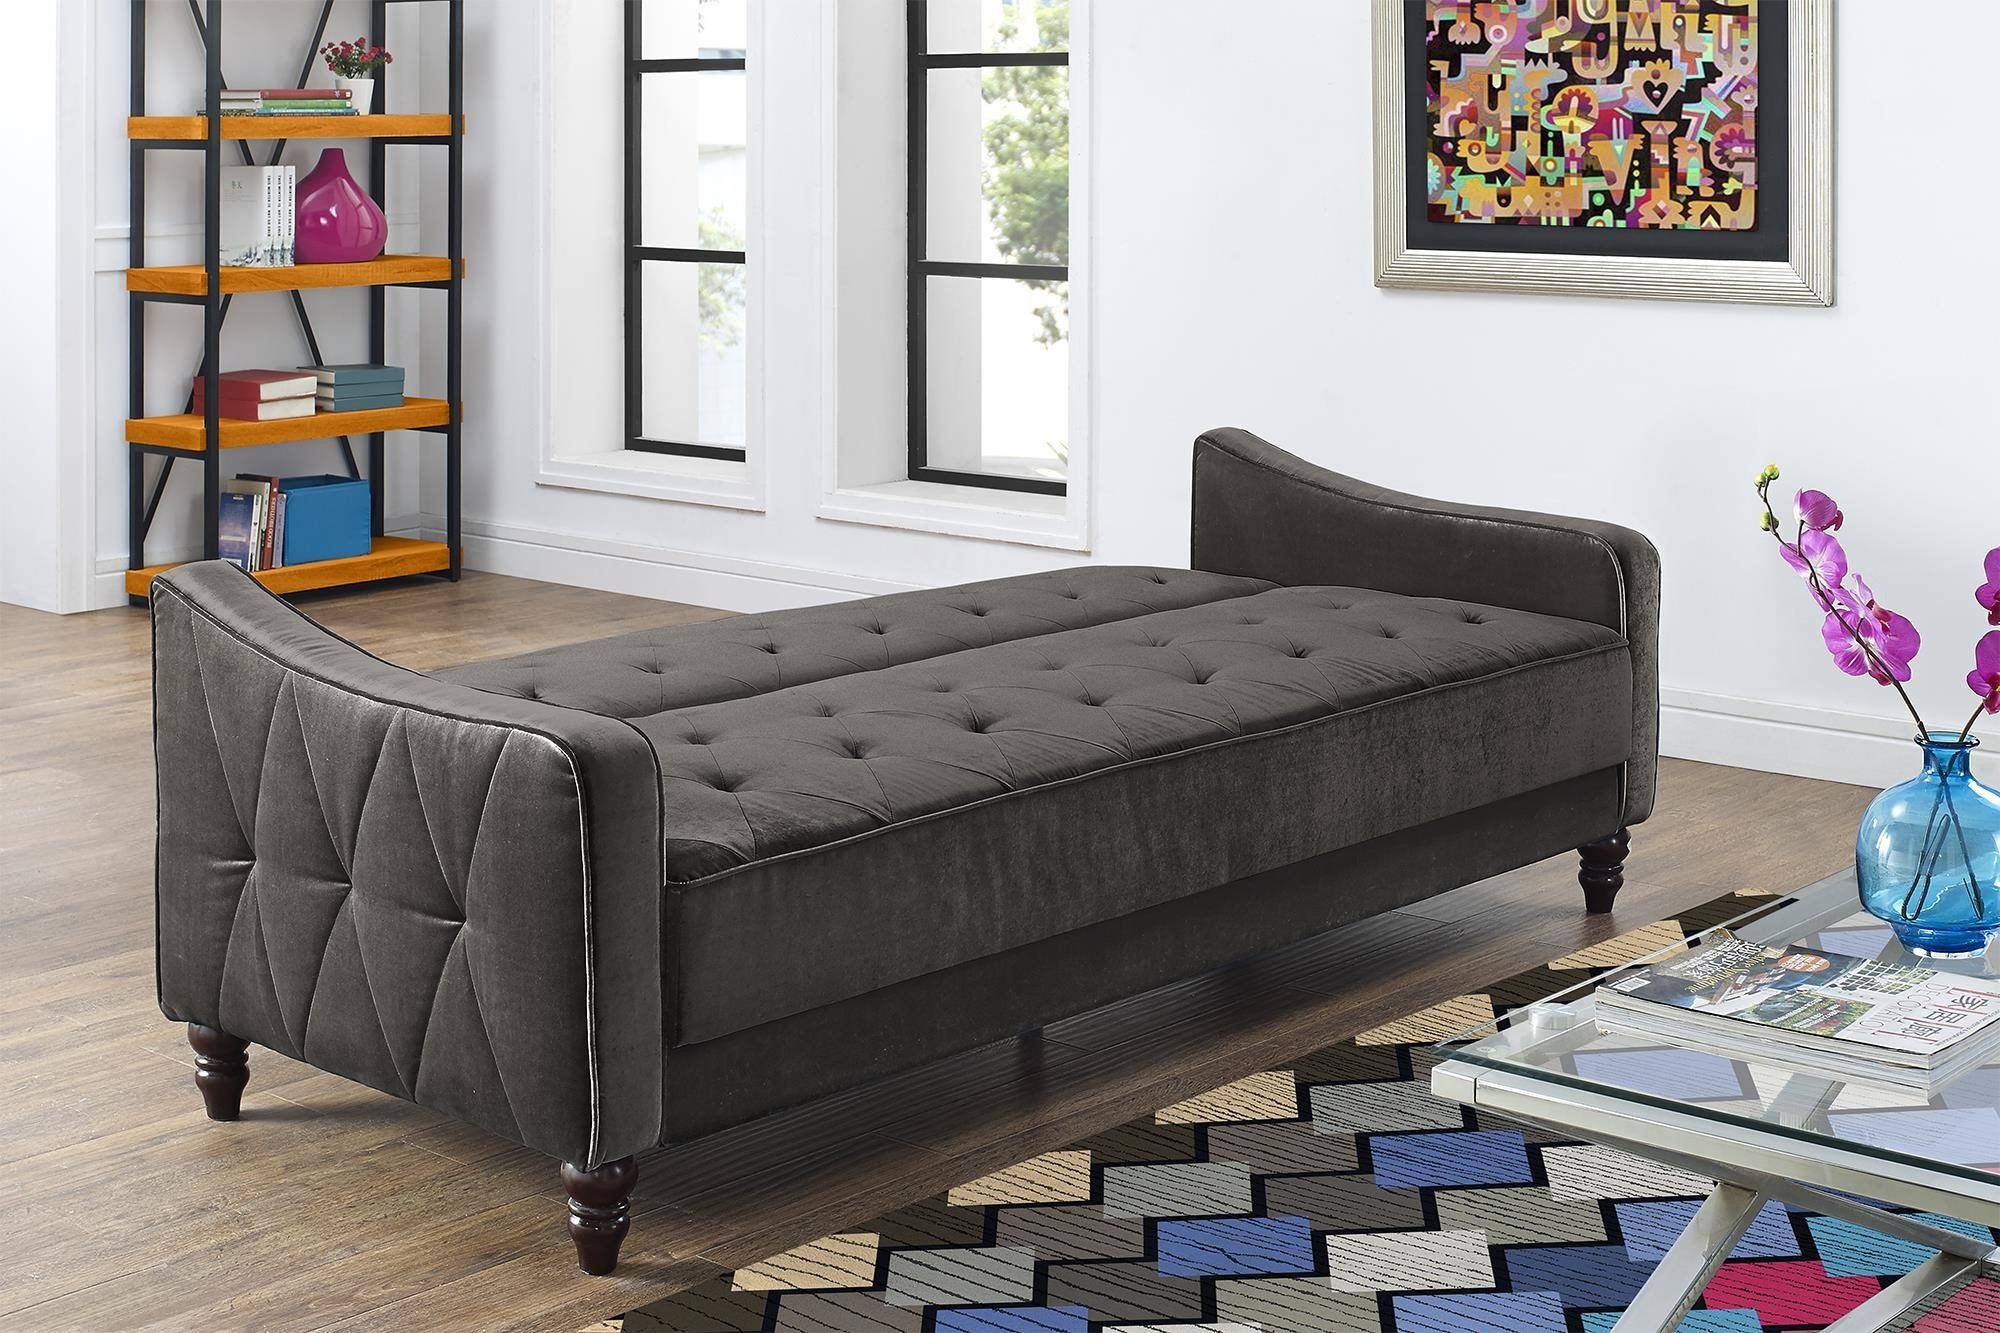 Tufted Twin Sleeper Sofa With Black Fabric Cover And Wooden Legs for Tufted Sleeper Sofas (Image 14 of 15)